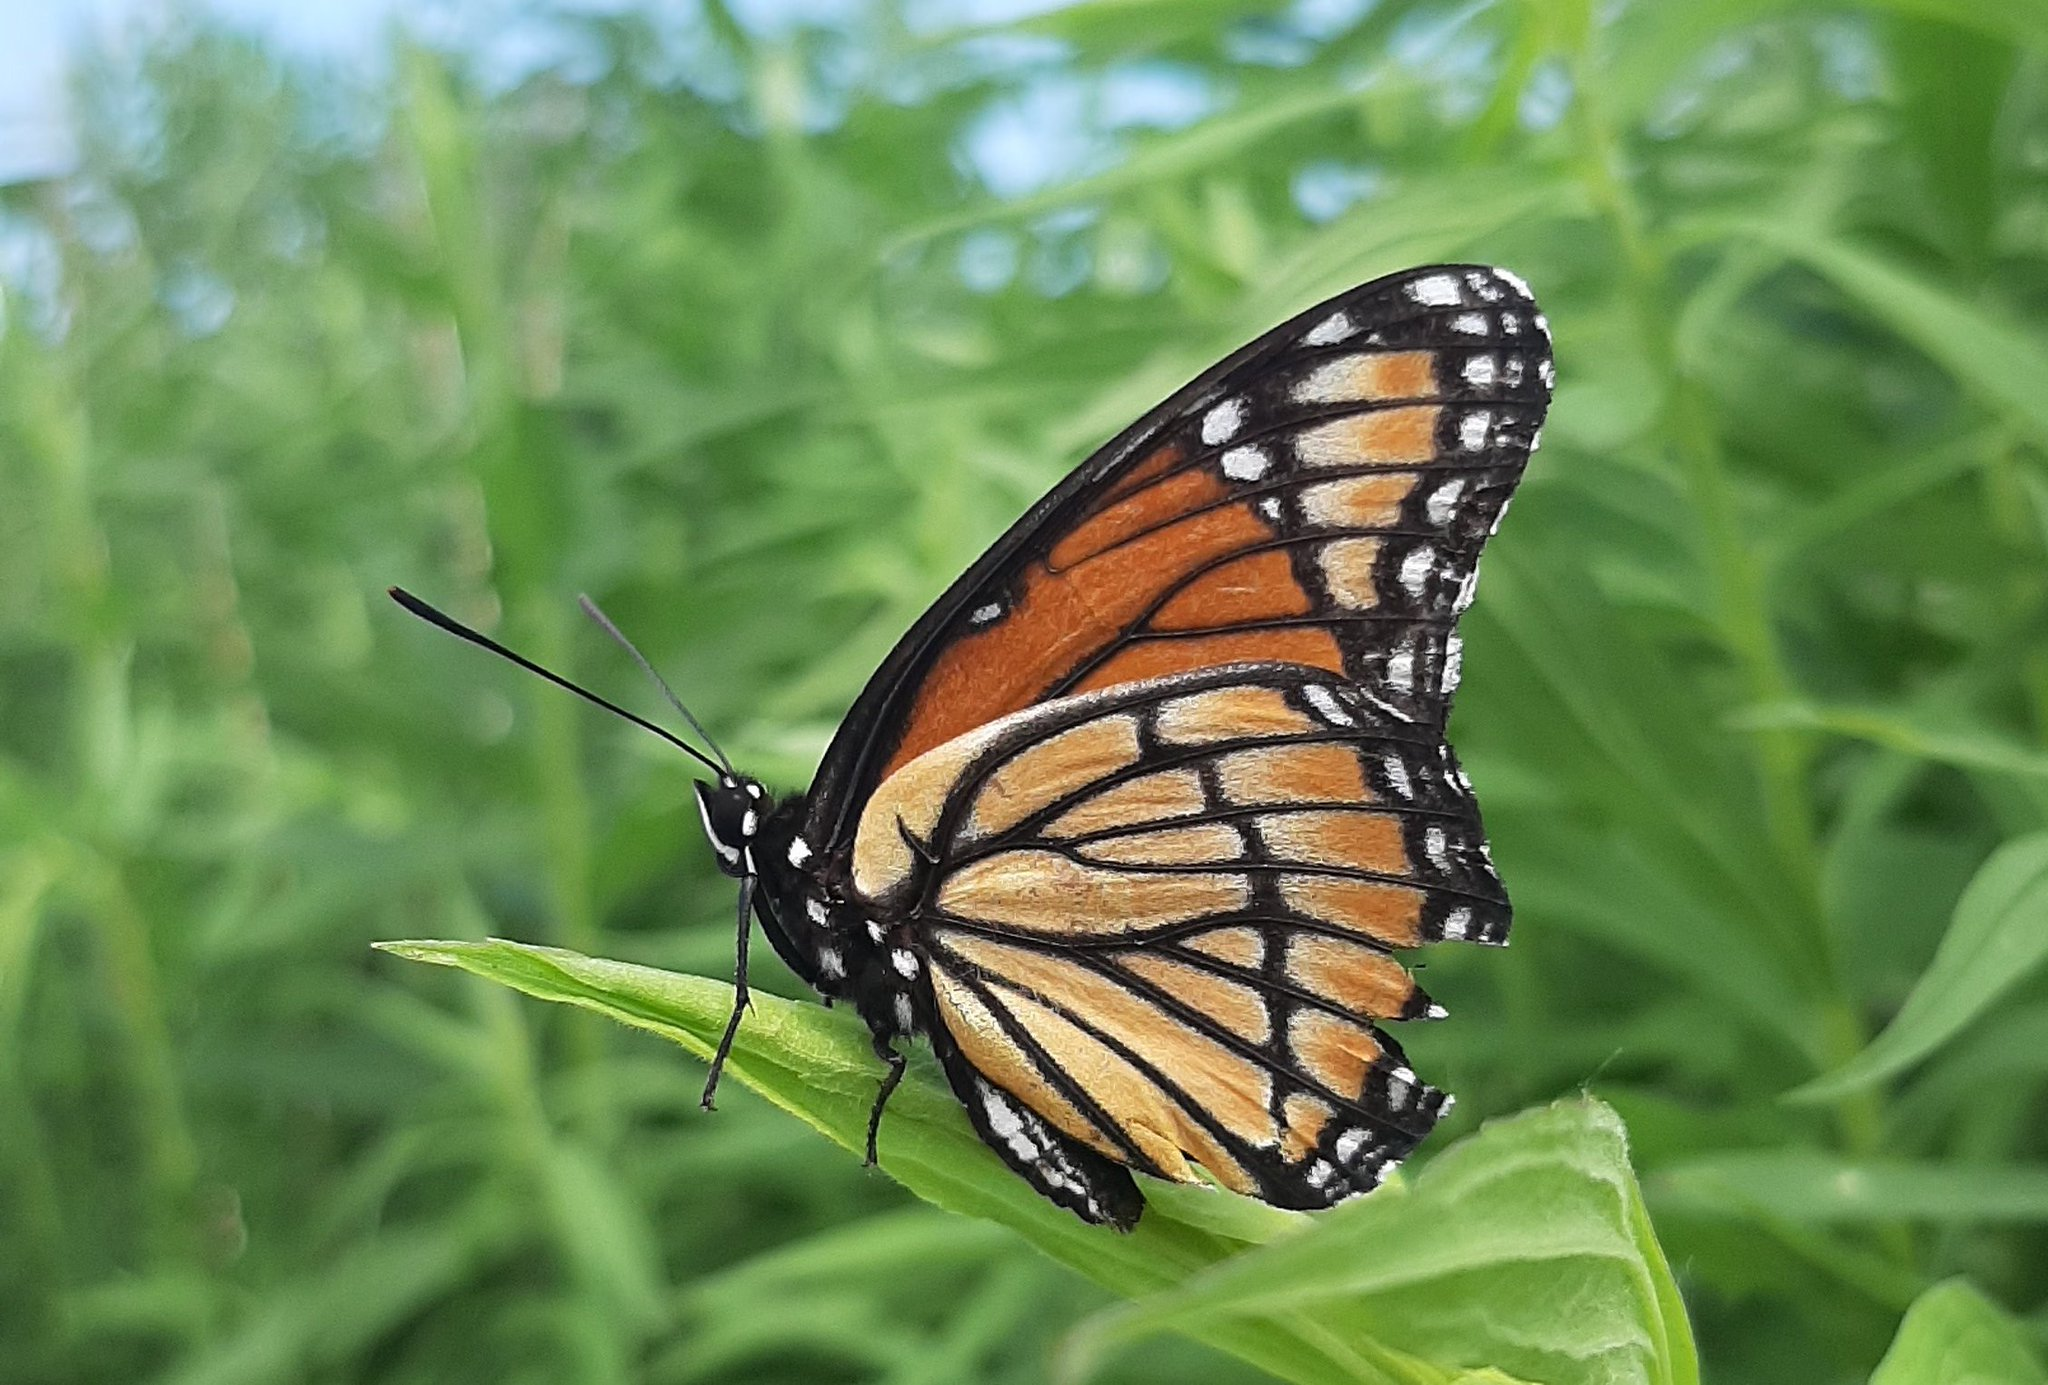 This is a Viceroy, it mimics almost perfectly the look of the much larger Monarch butterfly. Monarchs are poisonous to most predators, the Viceroy is not! #wildlife #nature #butterflies #Ontario https://t.co/NRGHJwKWfg